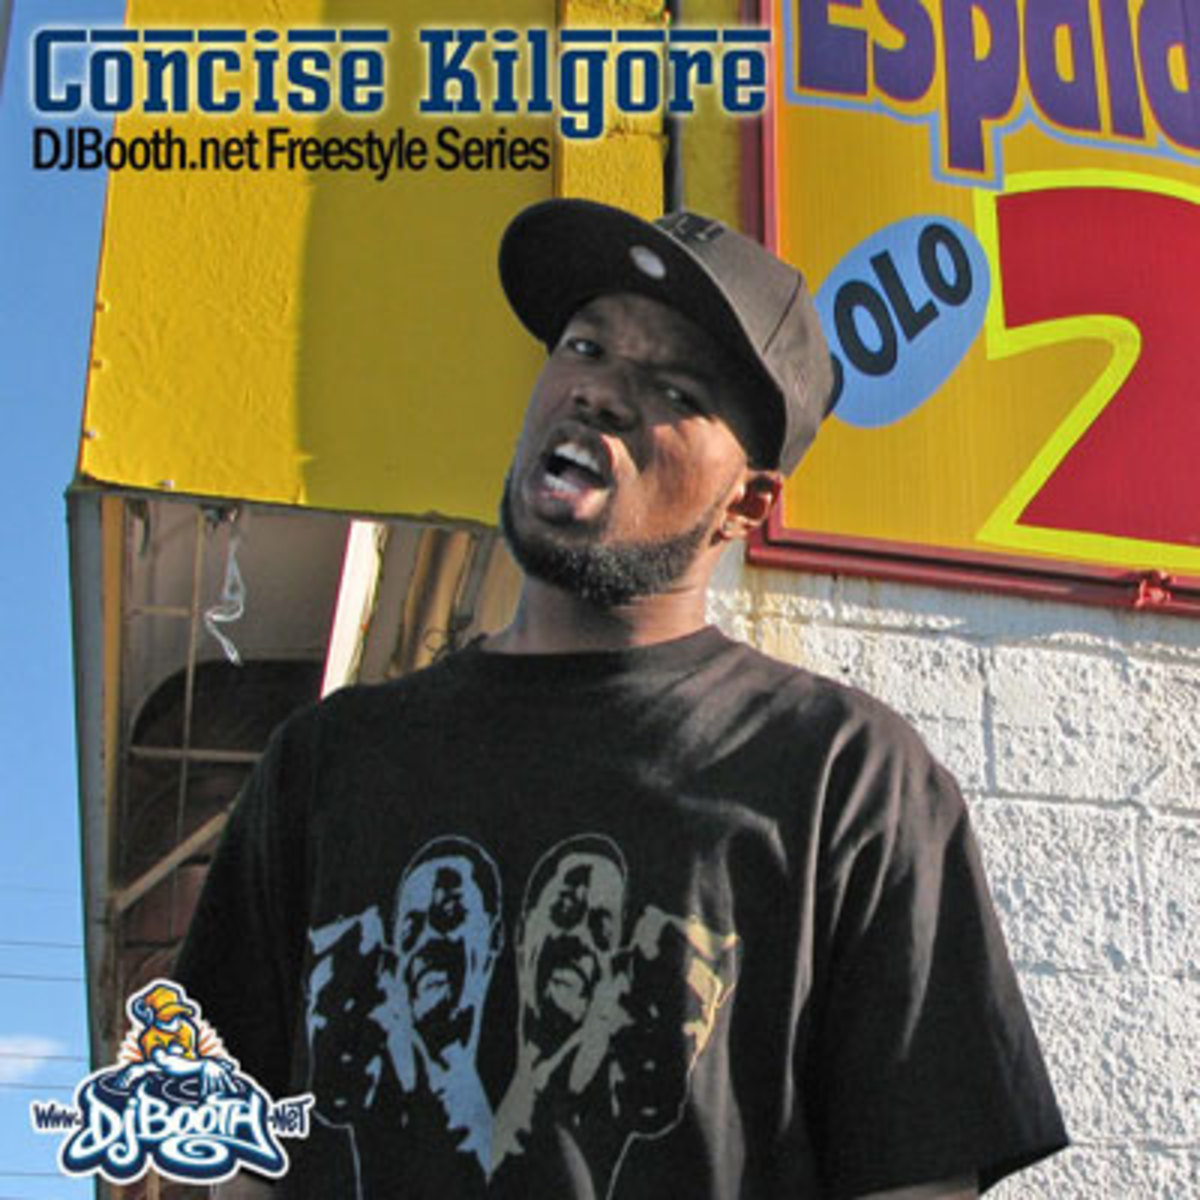 concisekilgore-freestyle.jpg